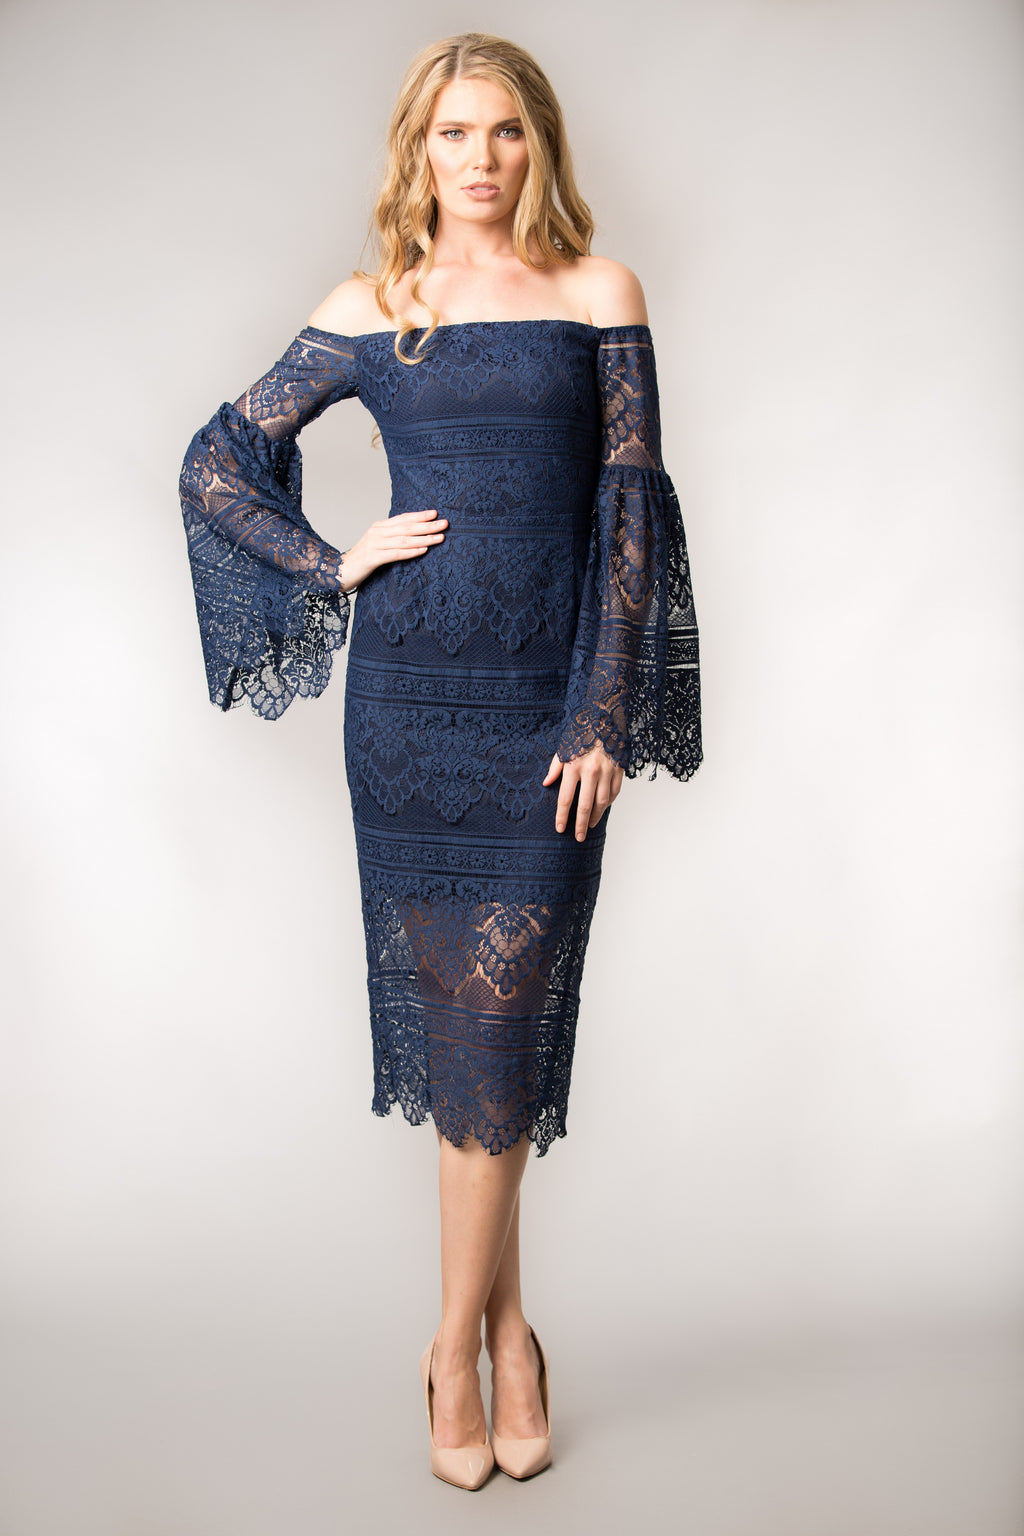 Belle Navy Lace Dress